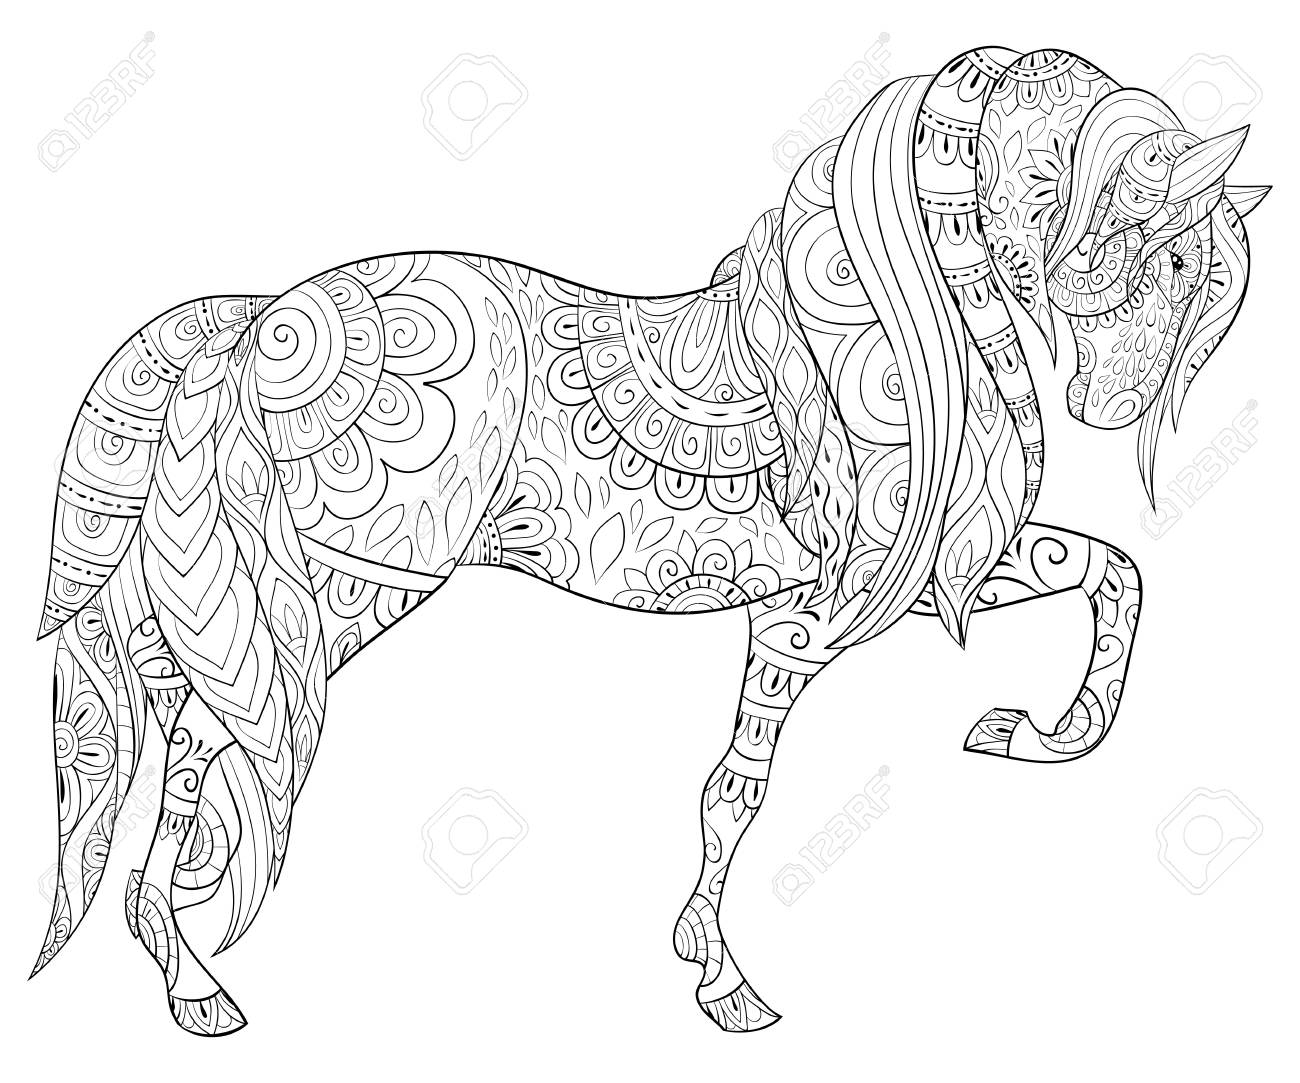 A Cute Horse With Ornaments Image For Adults Zen Art Style Illustration Royalty Free Cliparts Vectors And Stock Illustration Image 114296503